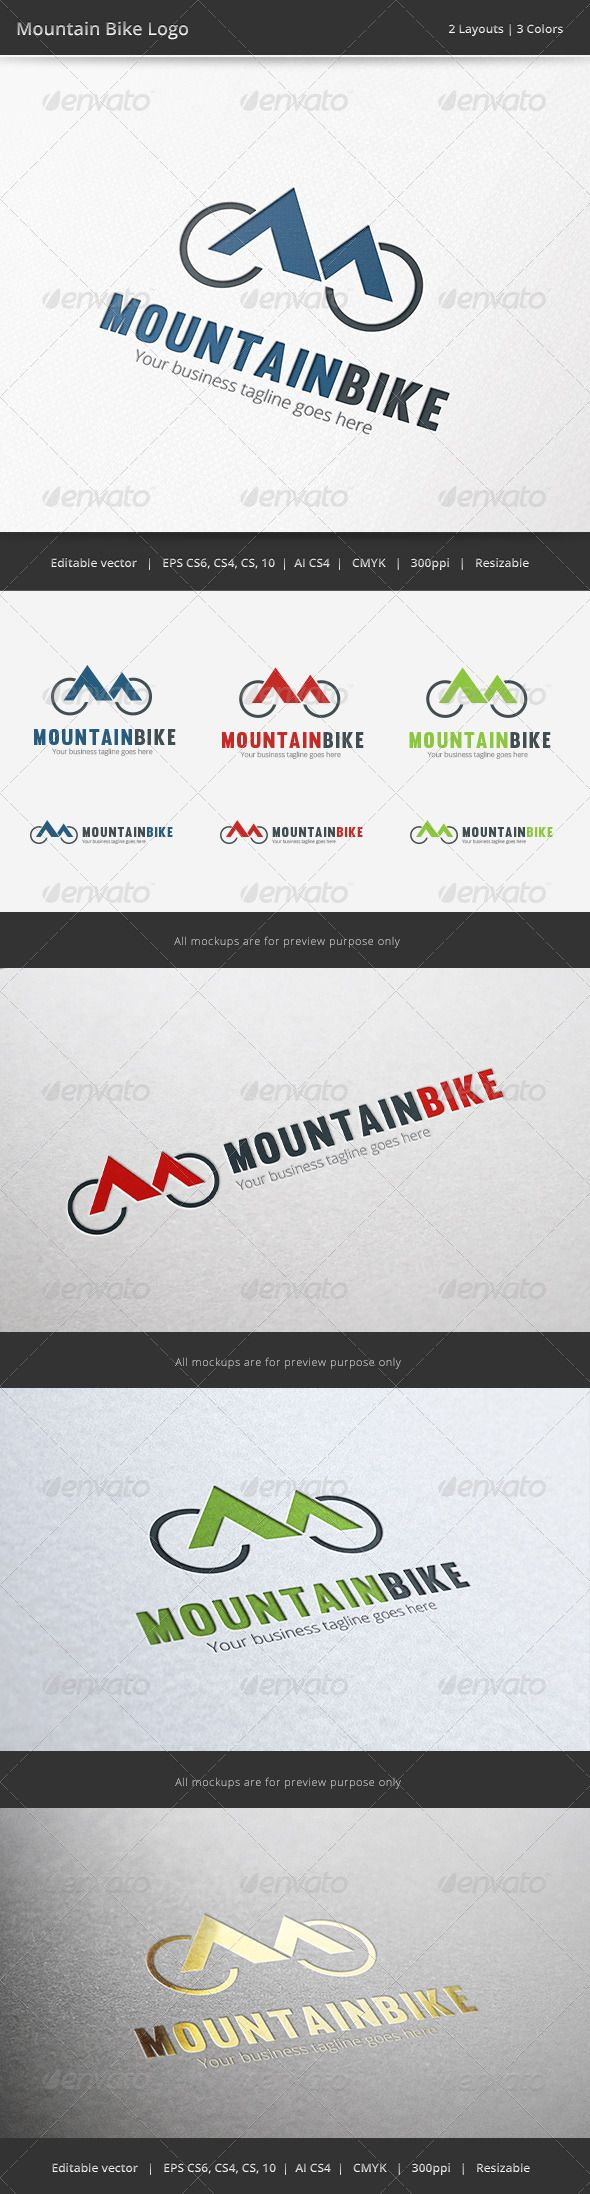 Mountain Bike Bicycle Logo — Vector EPS #sport #mountain • Available here → https://graphicriver.net/item/mountain-bike-bicycle-logo/6575435?ref=pxcr